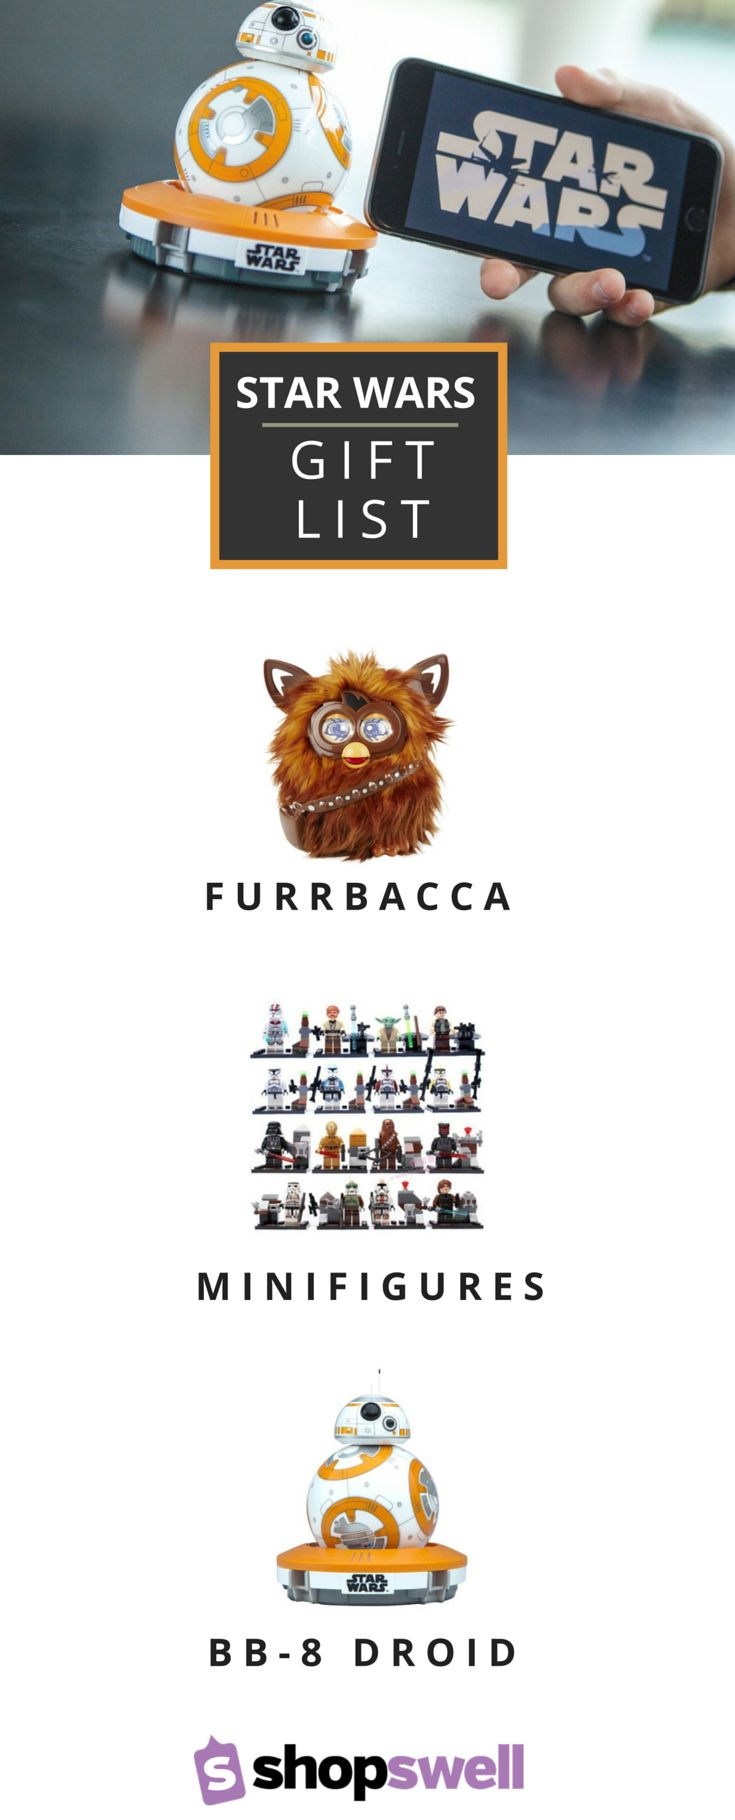 Love the furrbaca omg give this to me now